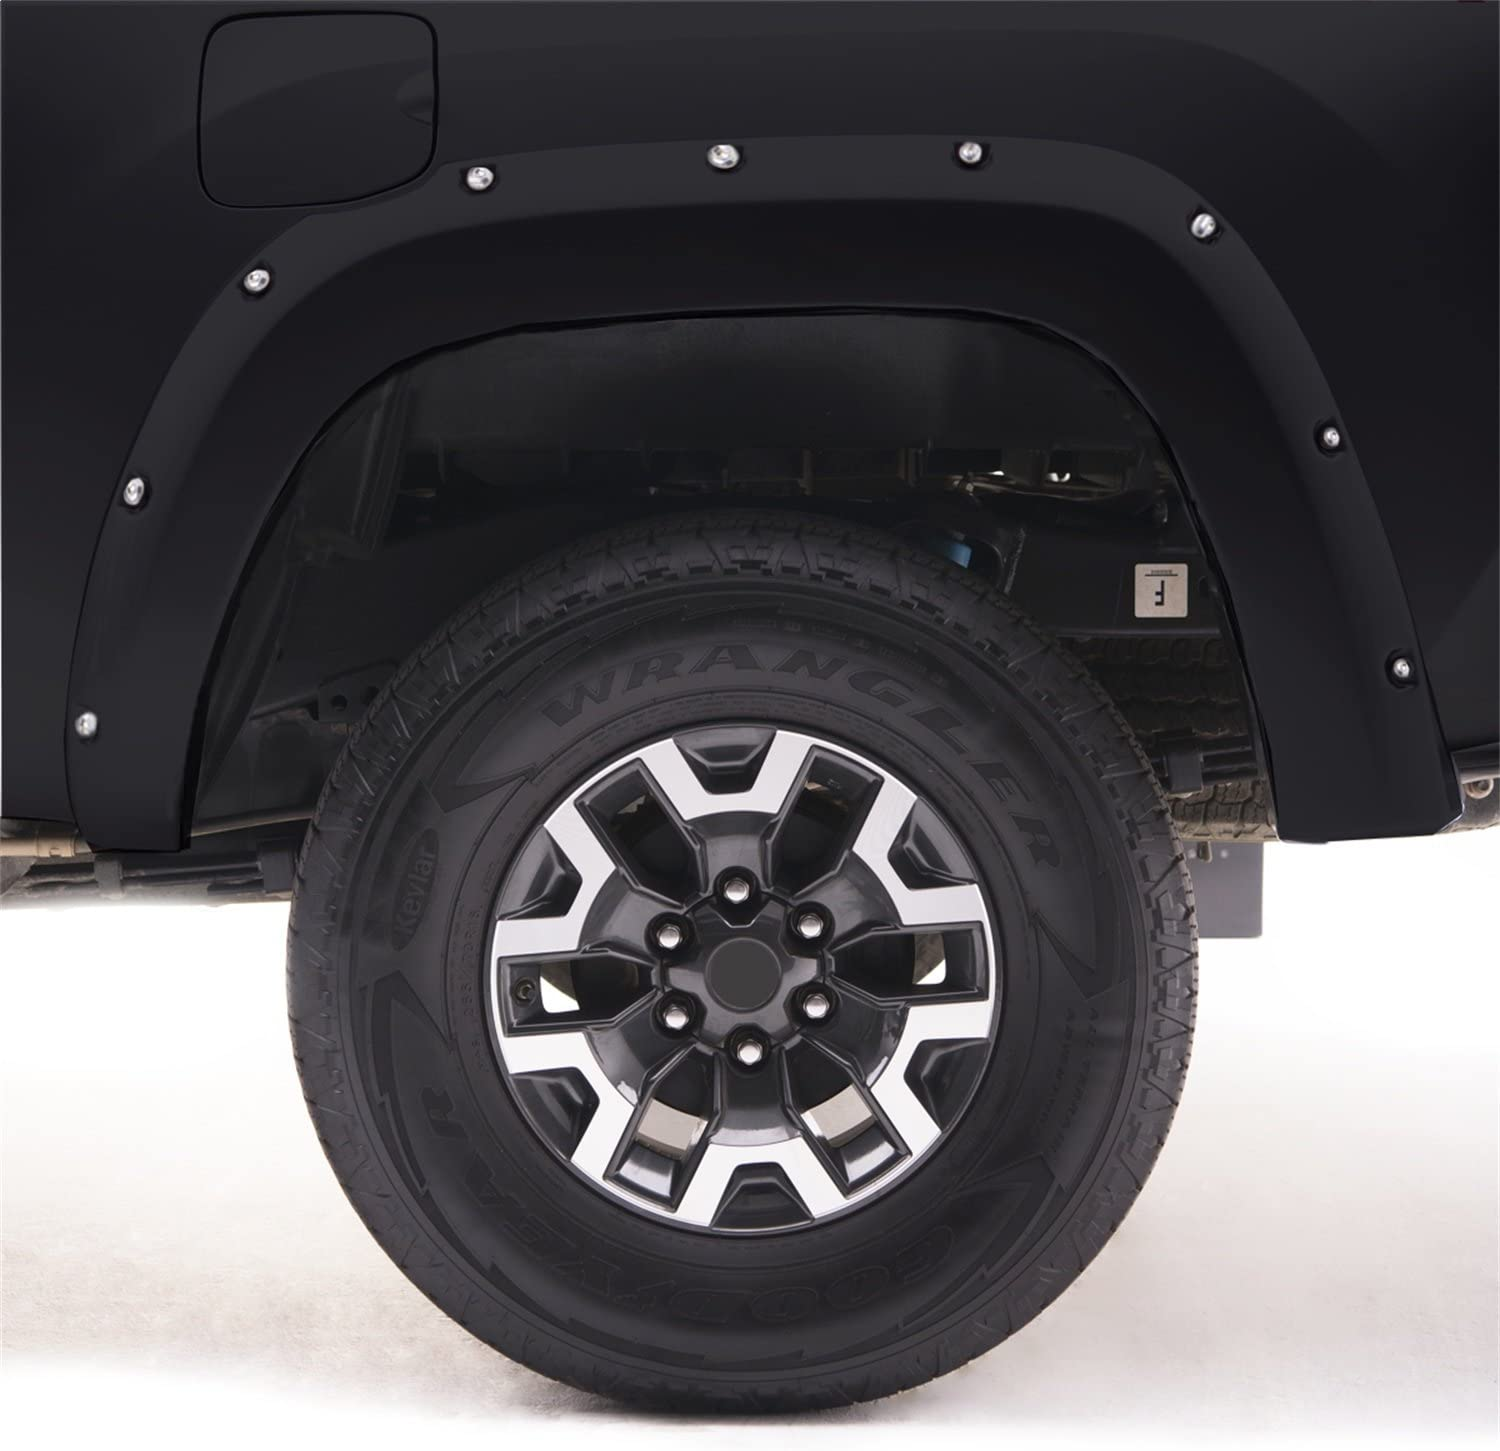 EGR 793914-J7 Bolt-On Look Paint Match Fender Flare Set of 4 No-Drill Front And Rear Magnetic Metallic Bolt-On Look Paint Match Fender Flare Set of 4